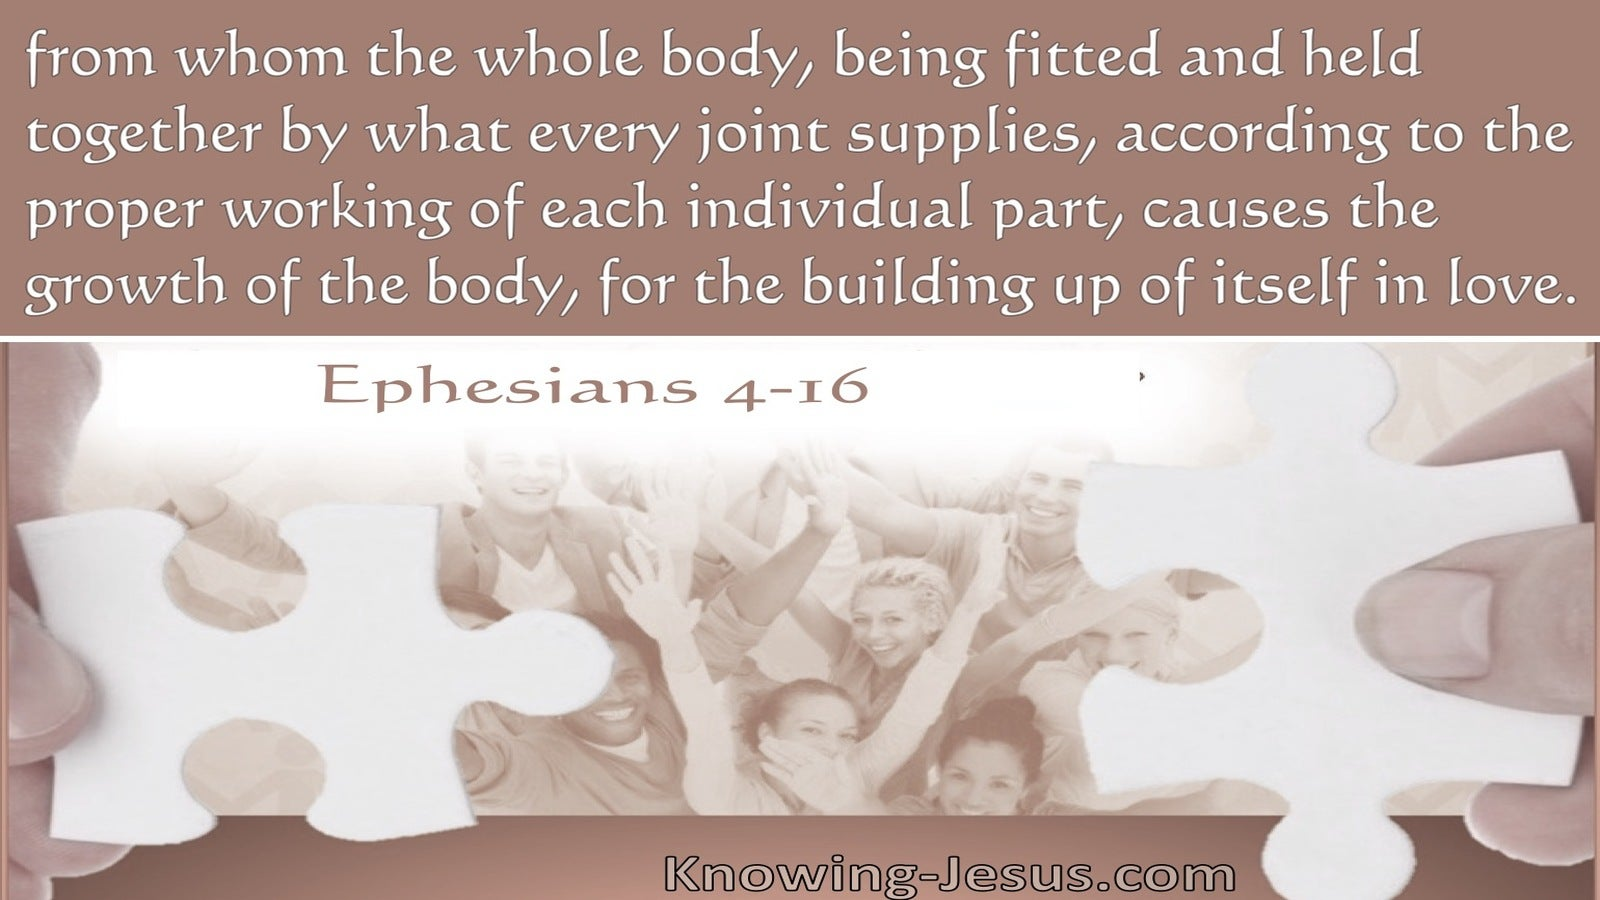 Ephesians 4:16 The Whole Body, Being Fitted And Held Together (brown)